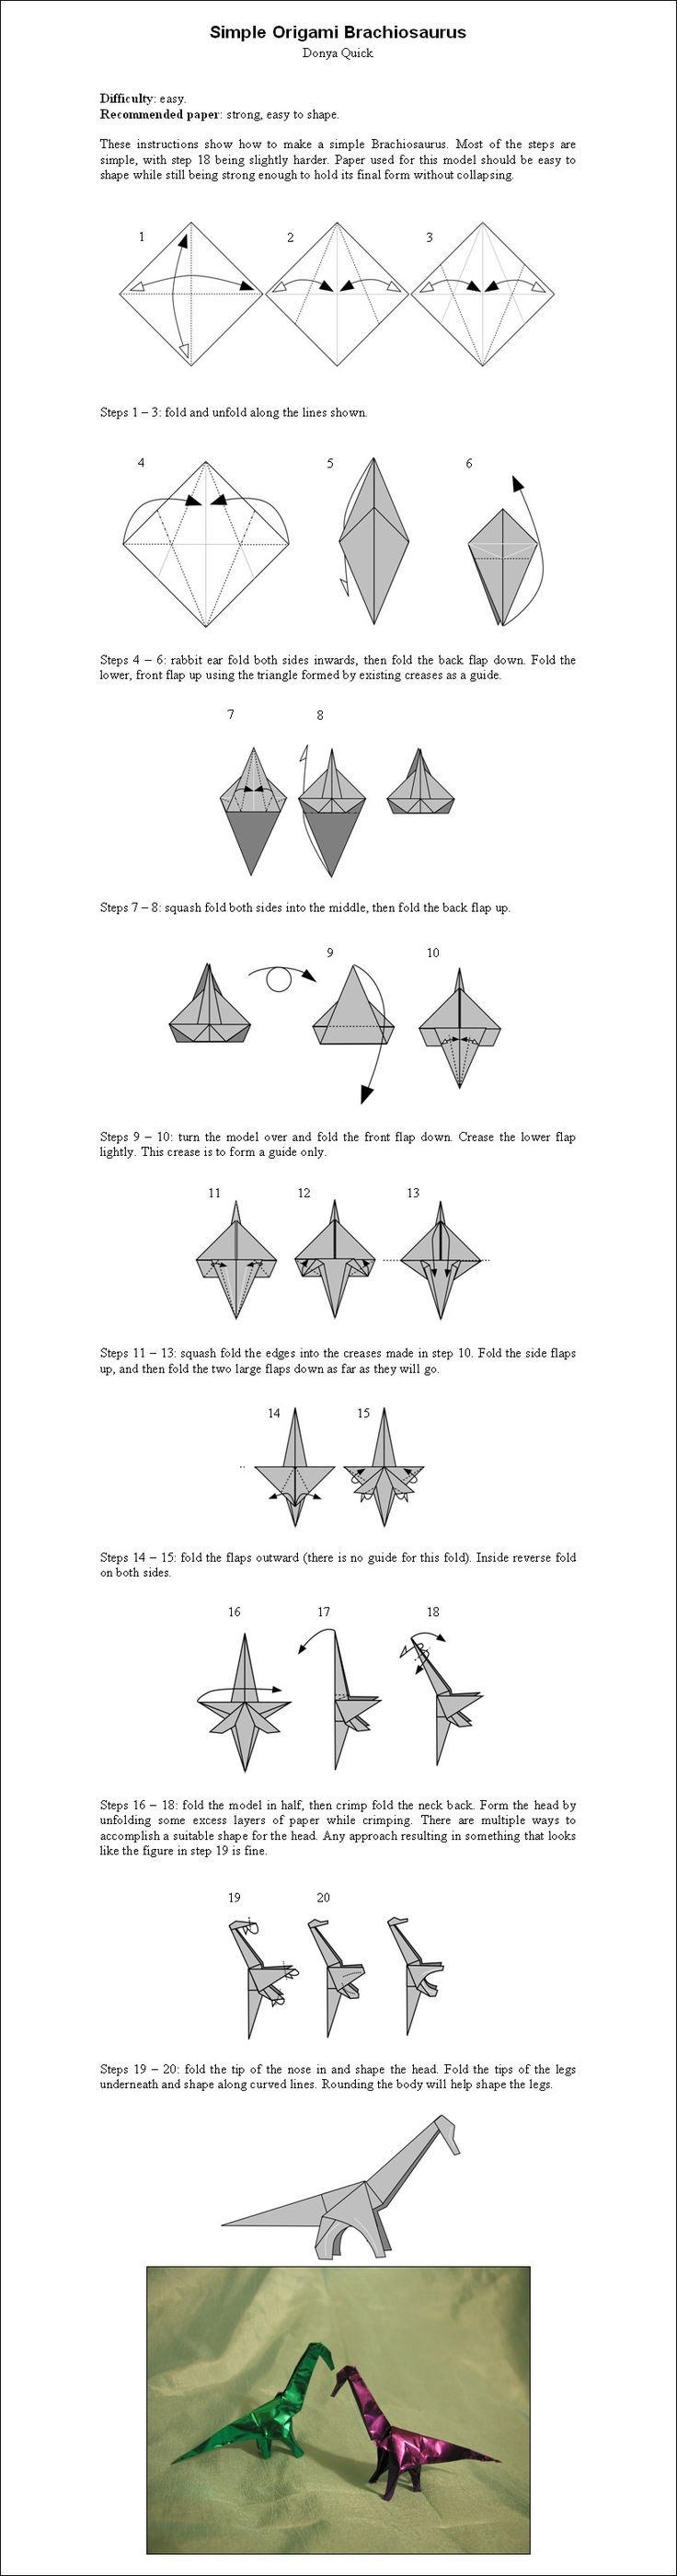 How to Make an Origami Cootie Catcher! | 2799x736